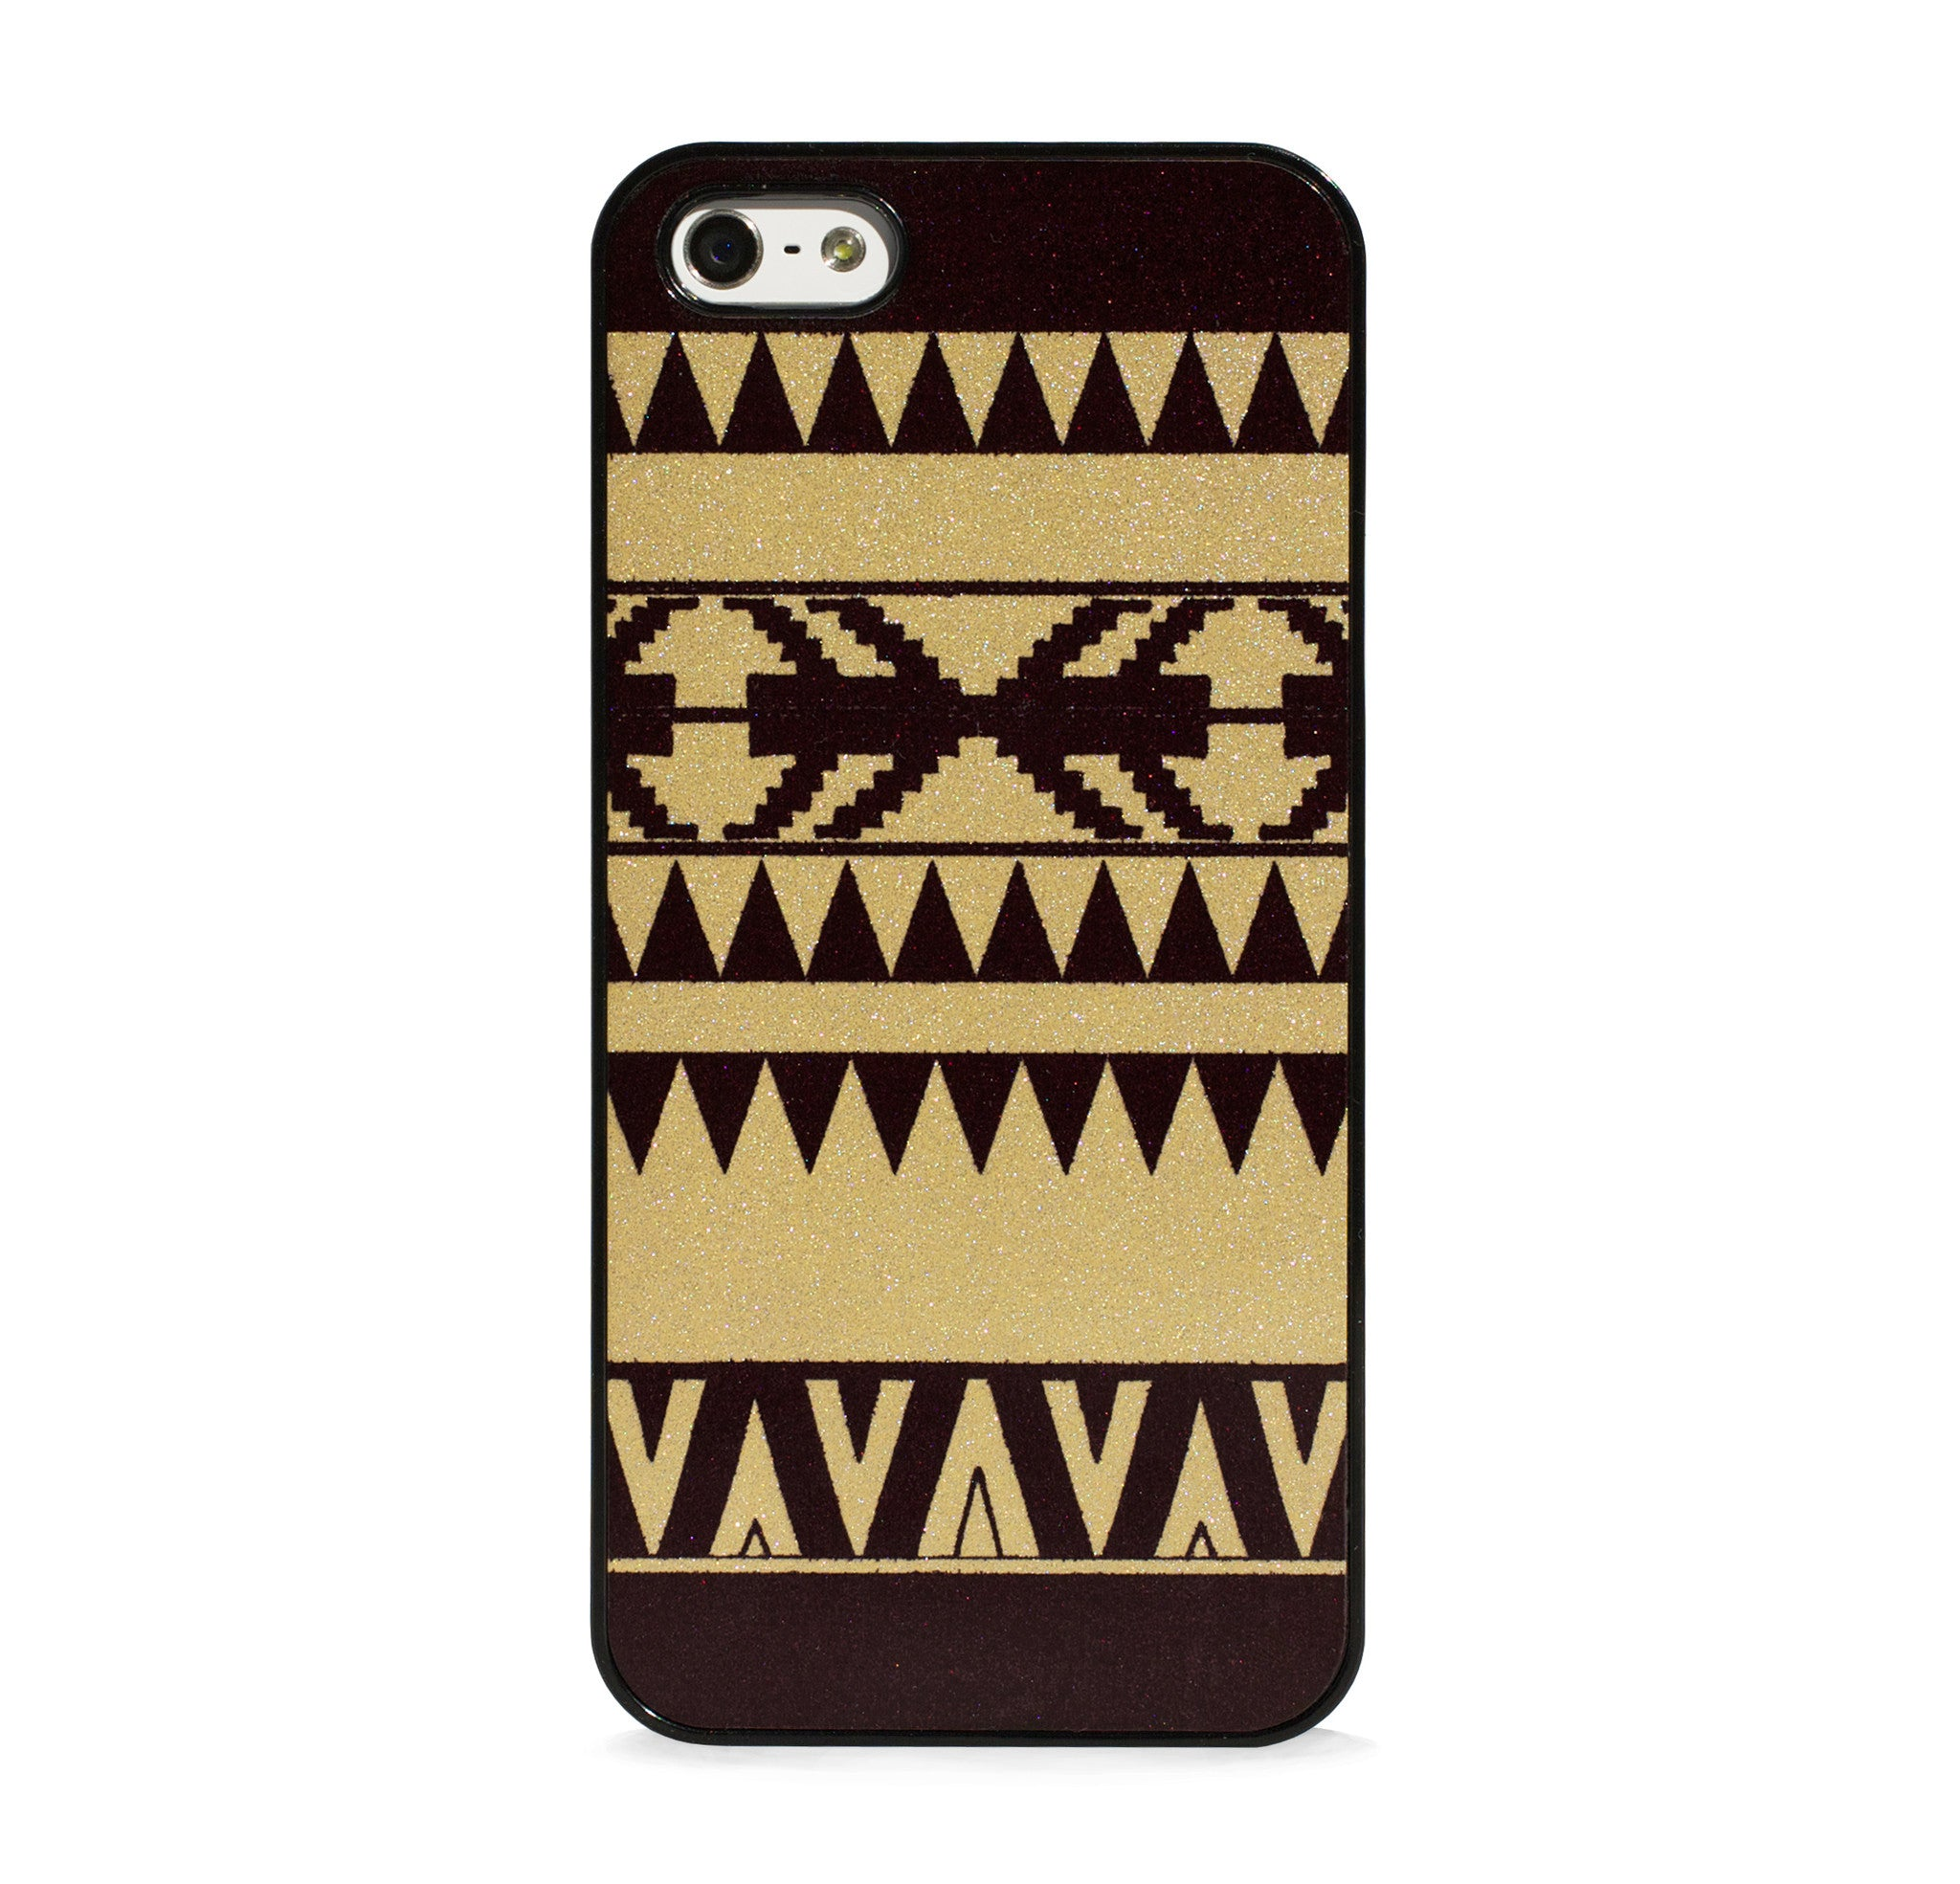 GLITTER GOLD AZTEC FOR IPHONE 5/5S, IPHONE SE